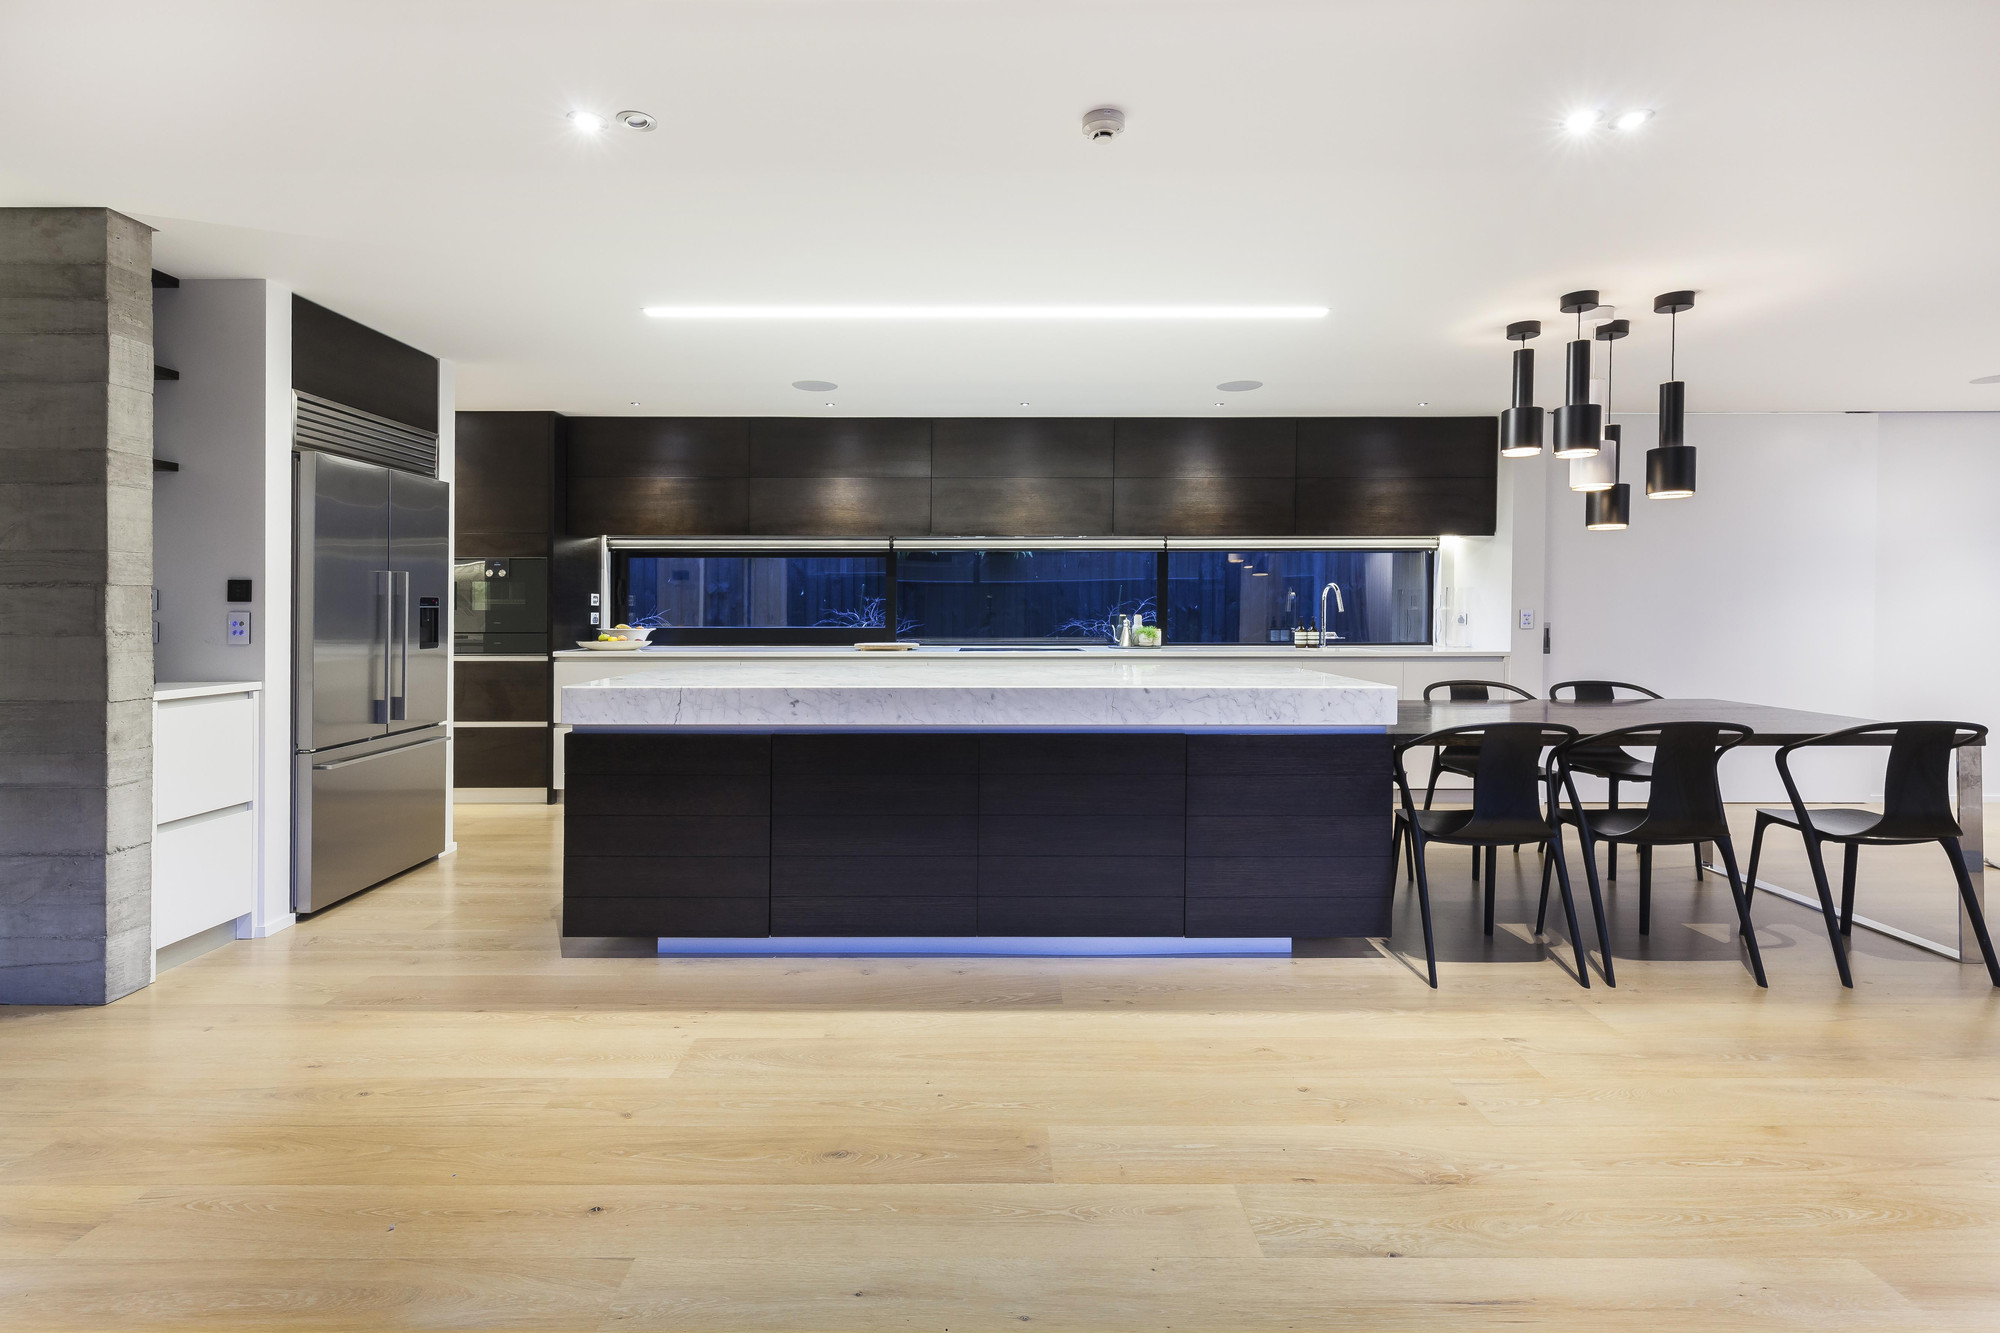 This Canterbury home features an interior designed kitchens